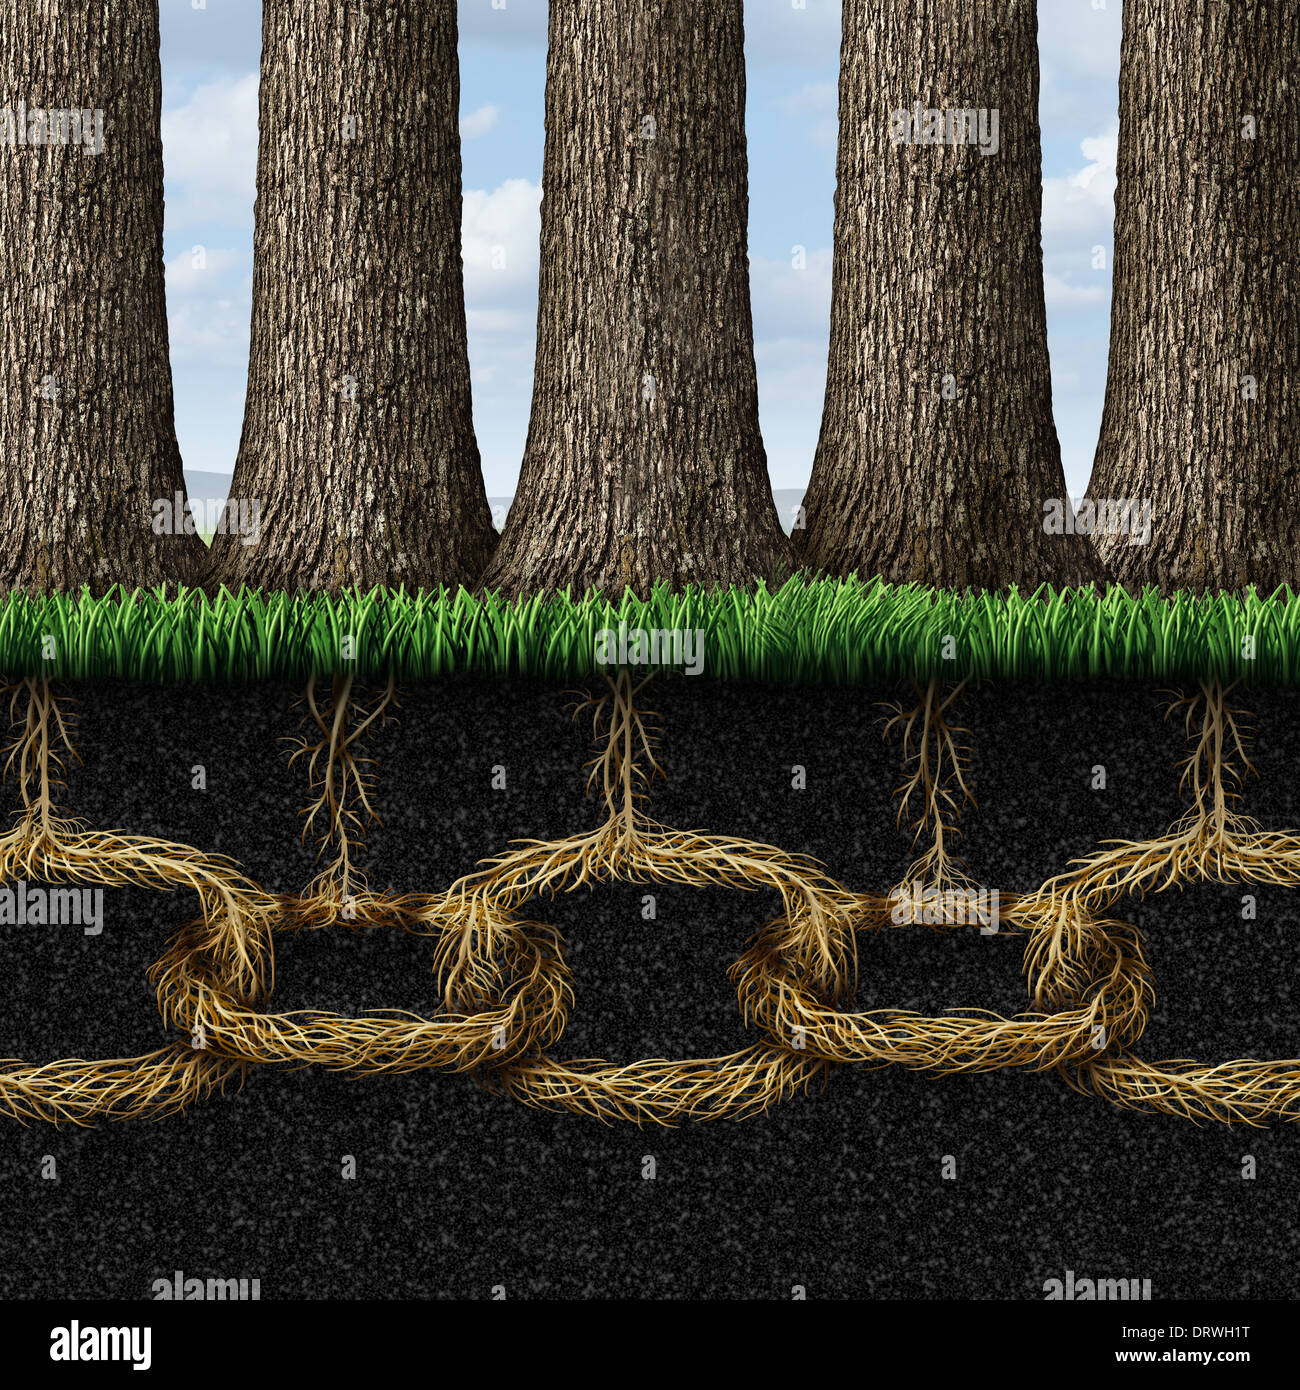 Unbreakable solidarity and teamwork cooperation concept as a group of trees connected underground with strong roots - Stock Image